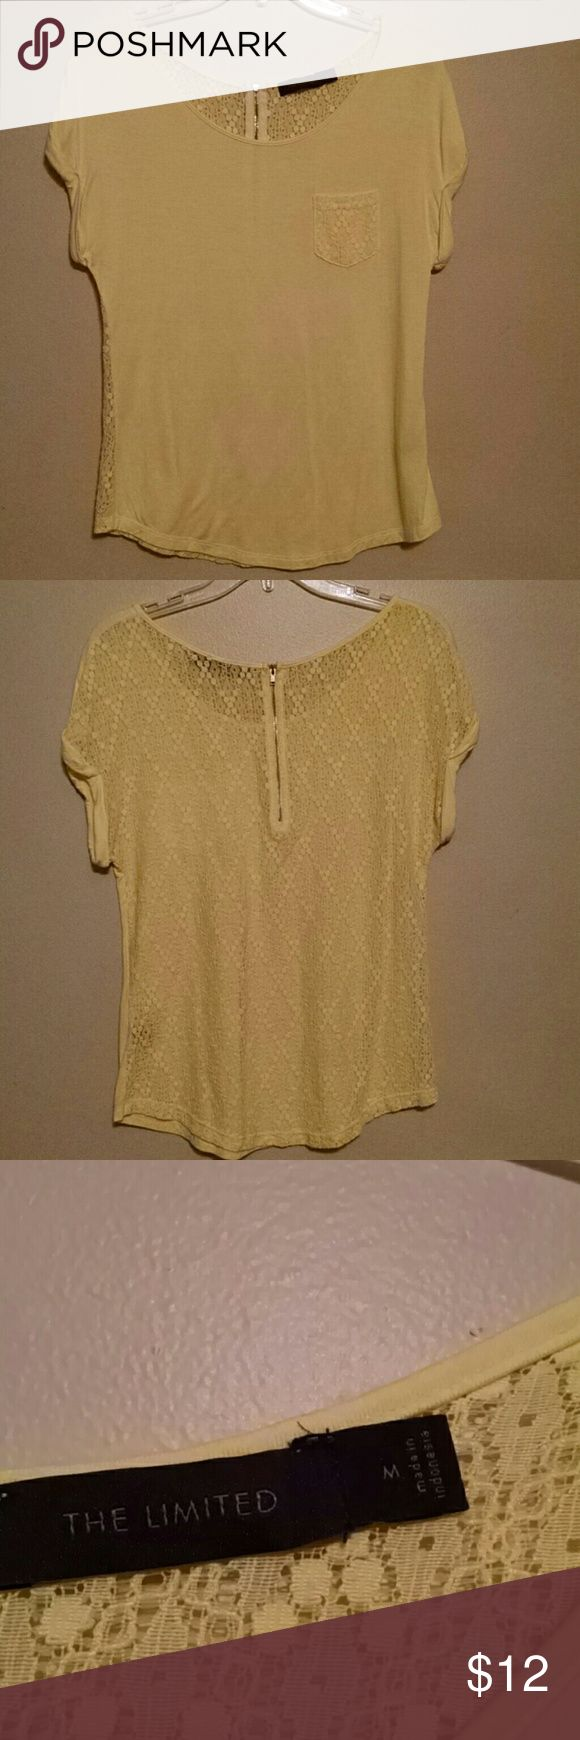 🔷final sale🔷Yellow short sleeve top Yellow short sleeve top from The Limited, pocket on the front is lace, the entire back is lace with a short zipper. The Limited Tops Blouses